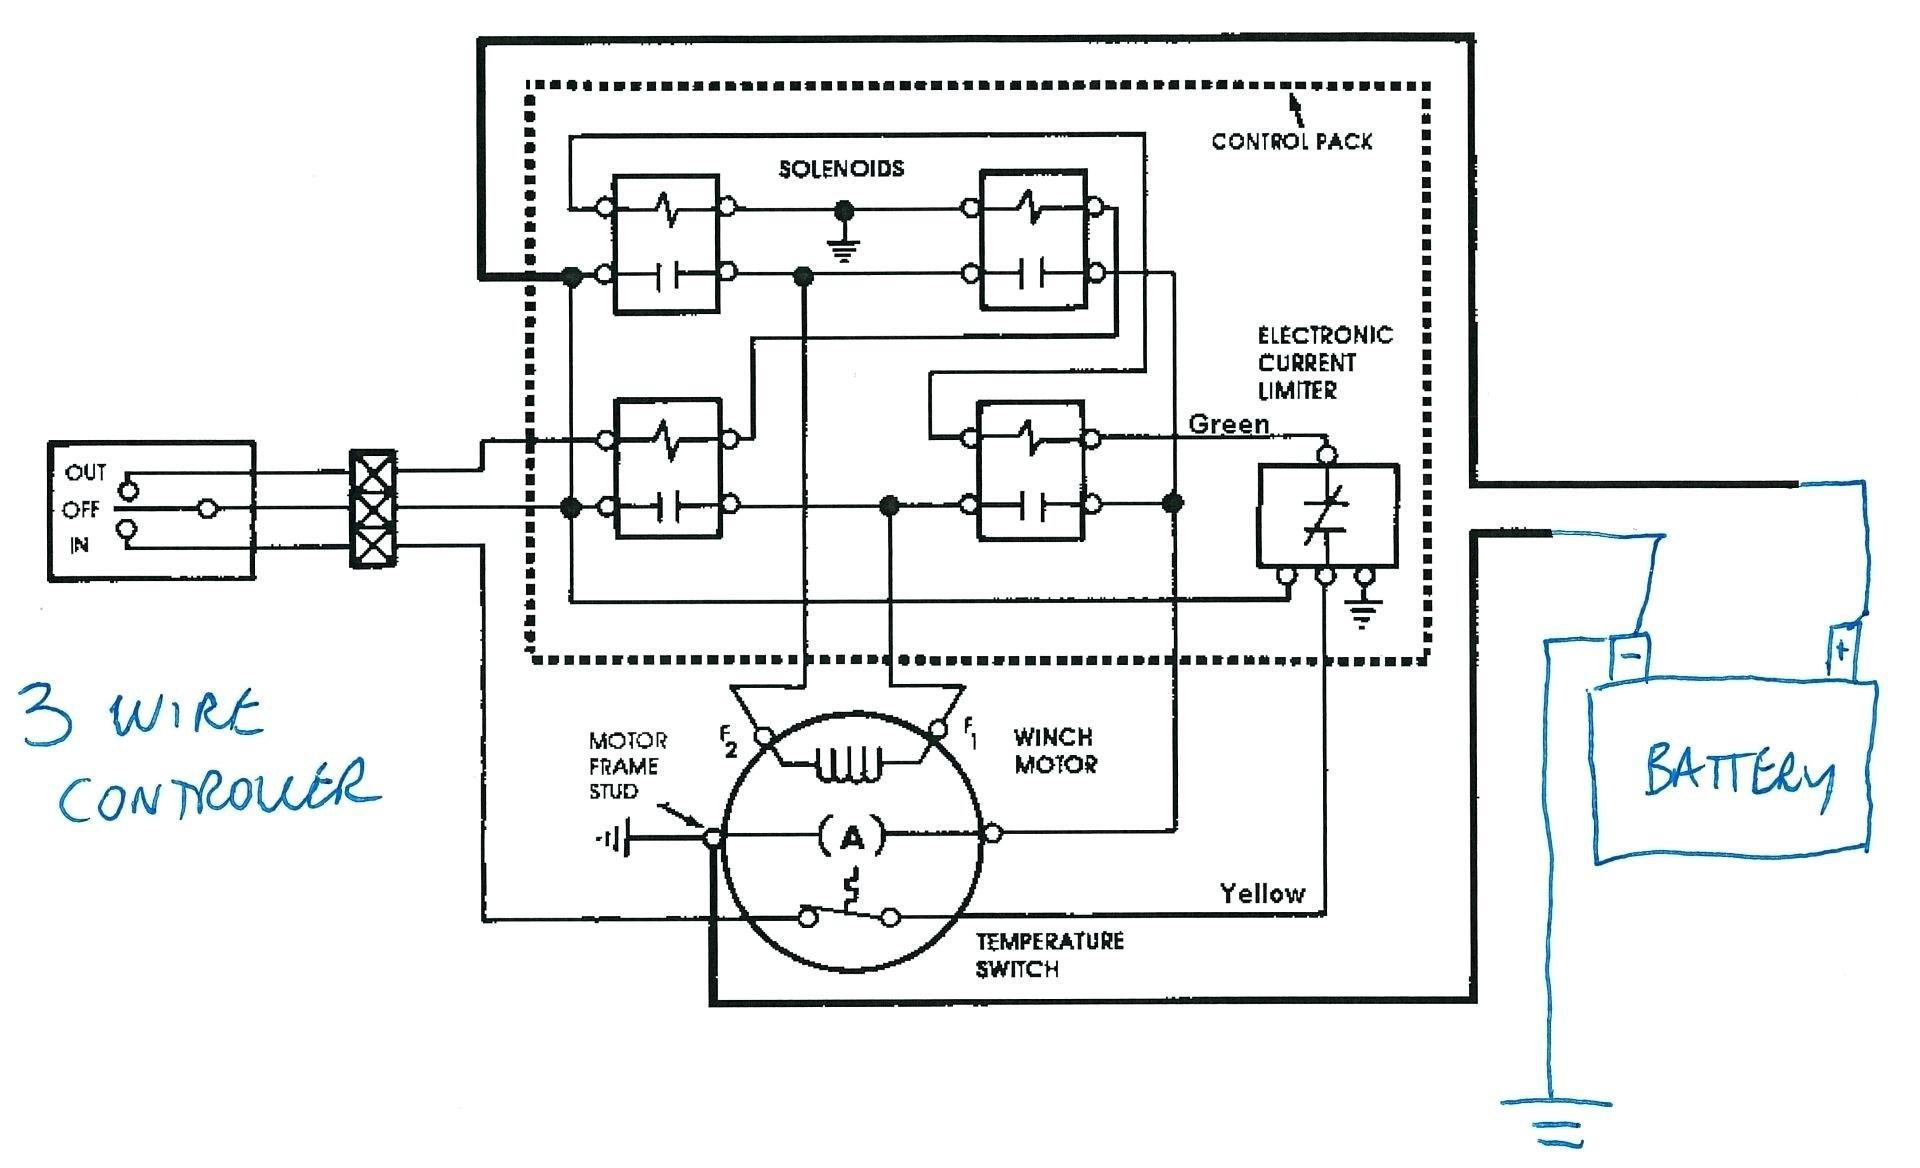 Lighting Contactors Wiring Diagrams | Wiring Diagram - Square D 8903 Lighting Contactor Wiring Diagram